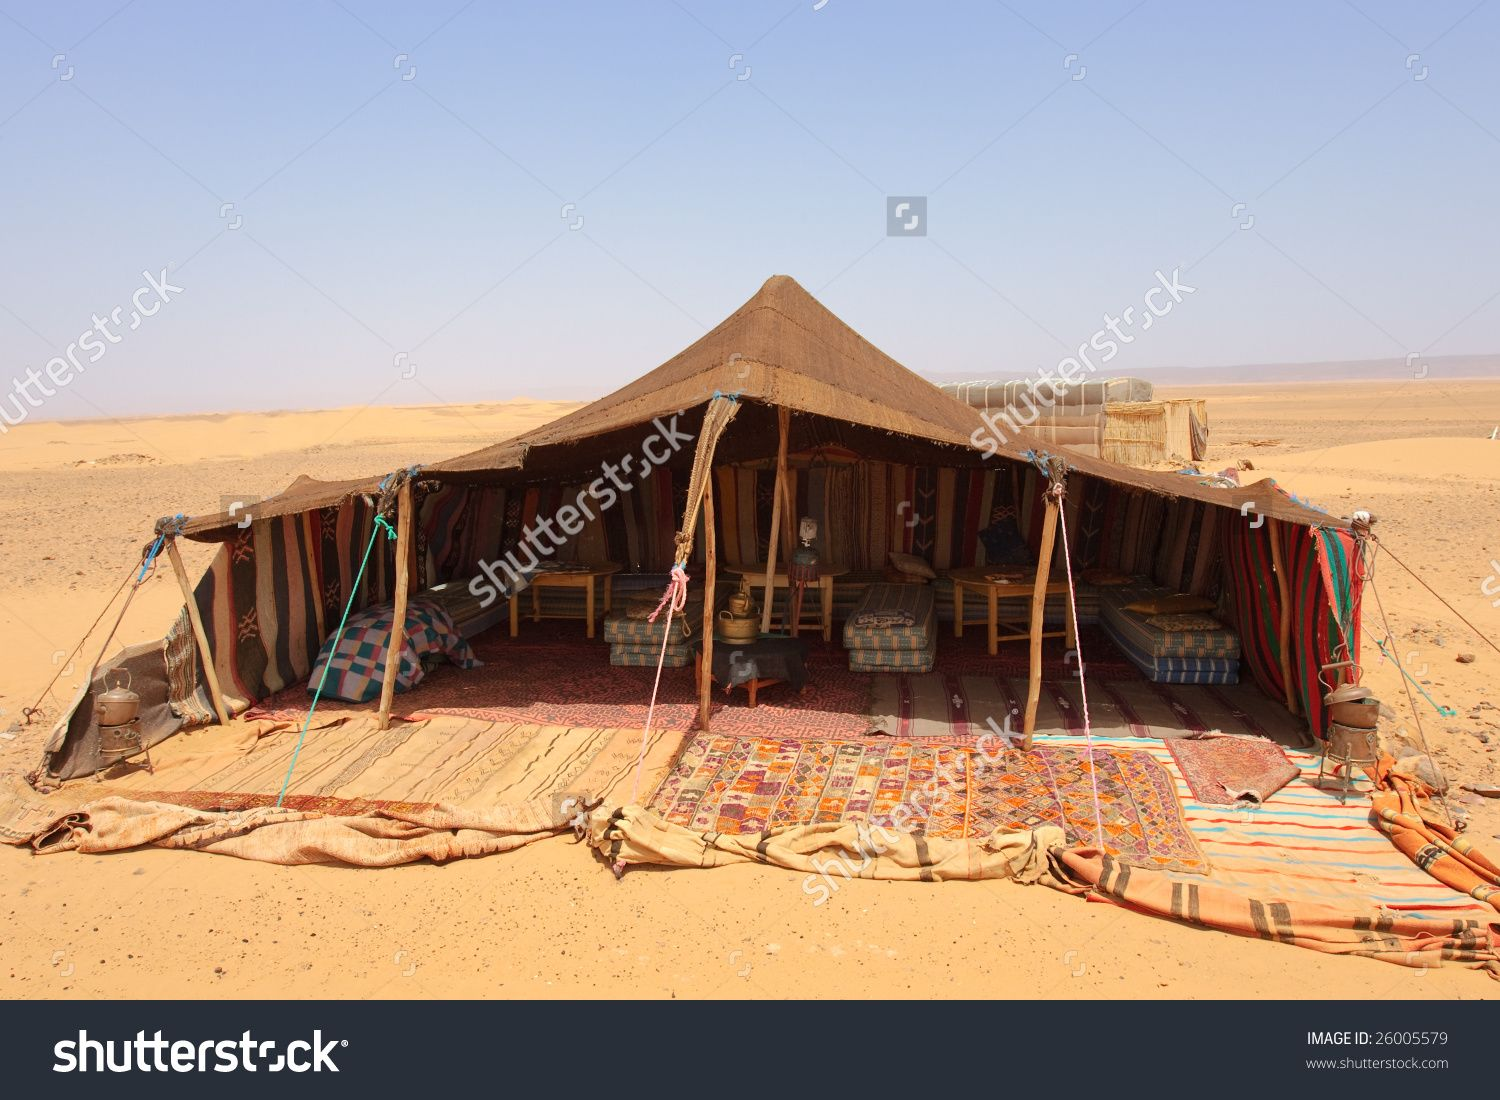 Bedouin Tent Stock Photos Images u0026 Pictures | Shutterstock & Bedouin Tent Stock Photos Images u0026 Pictures | Shutterstock ...